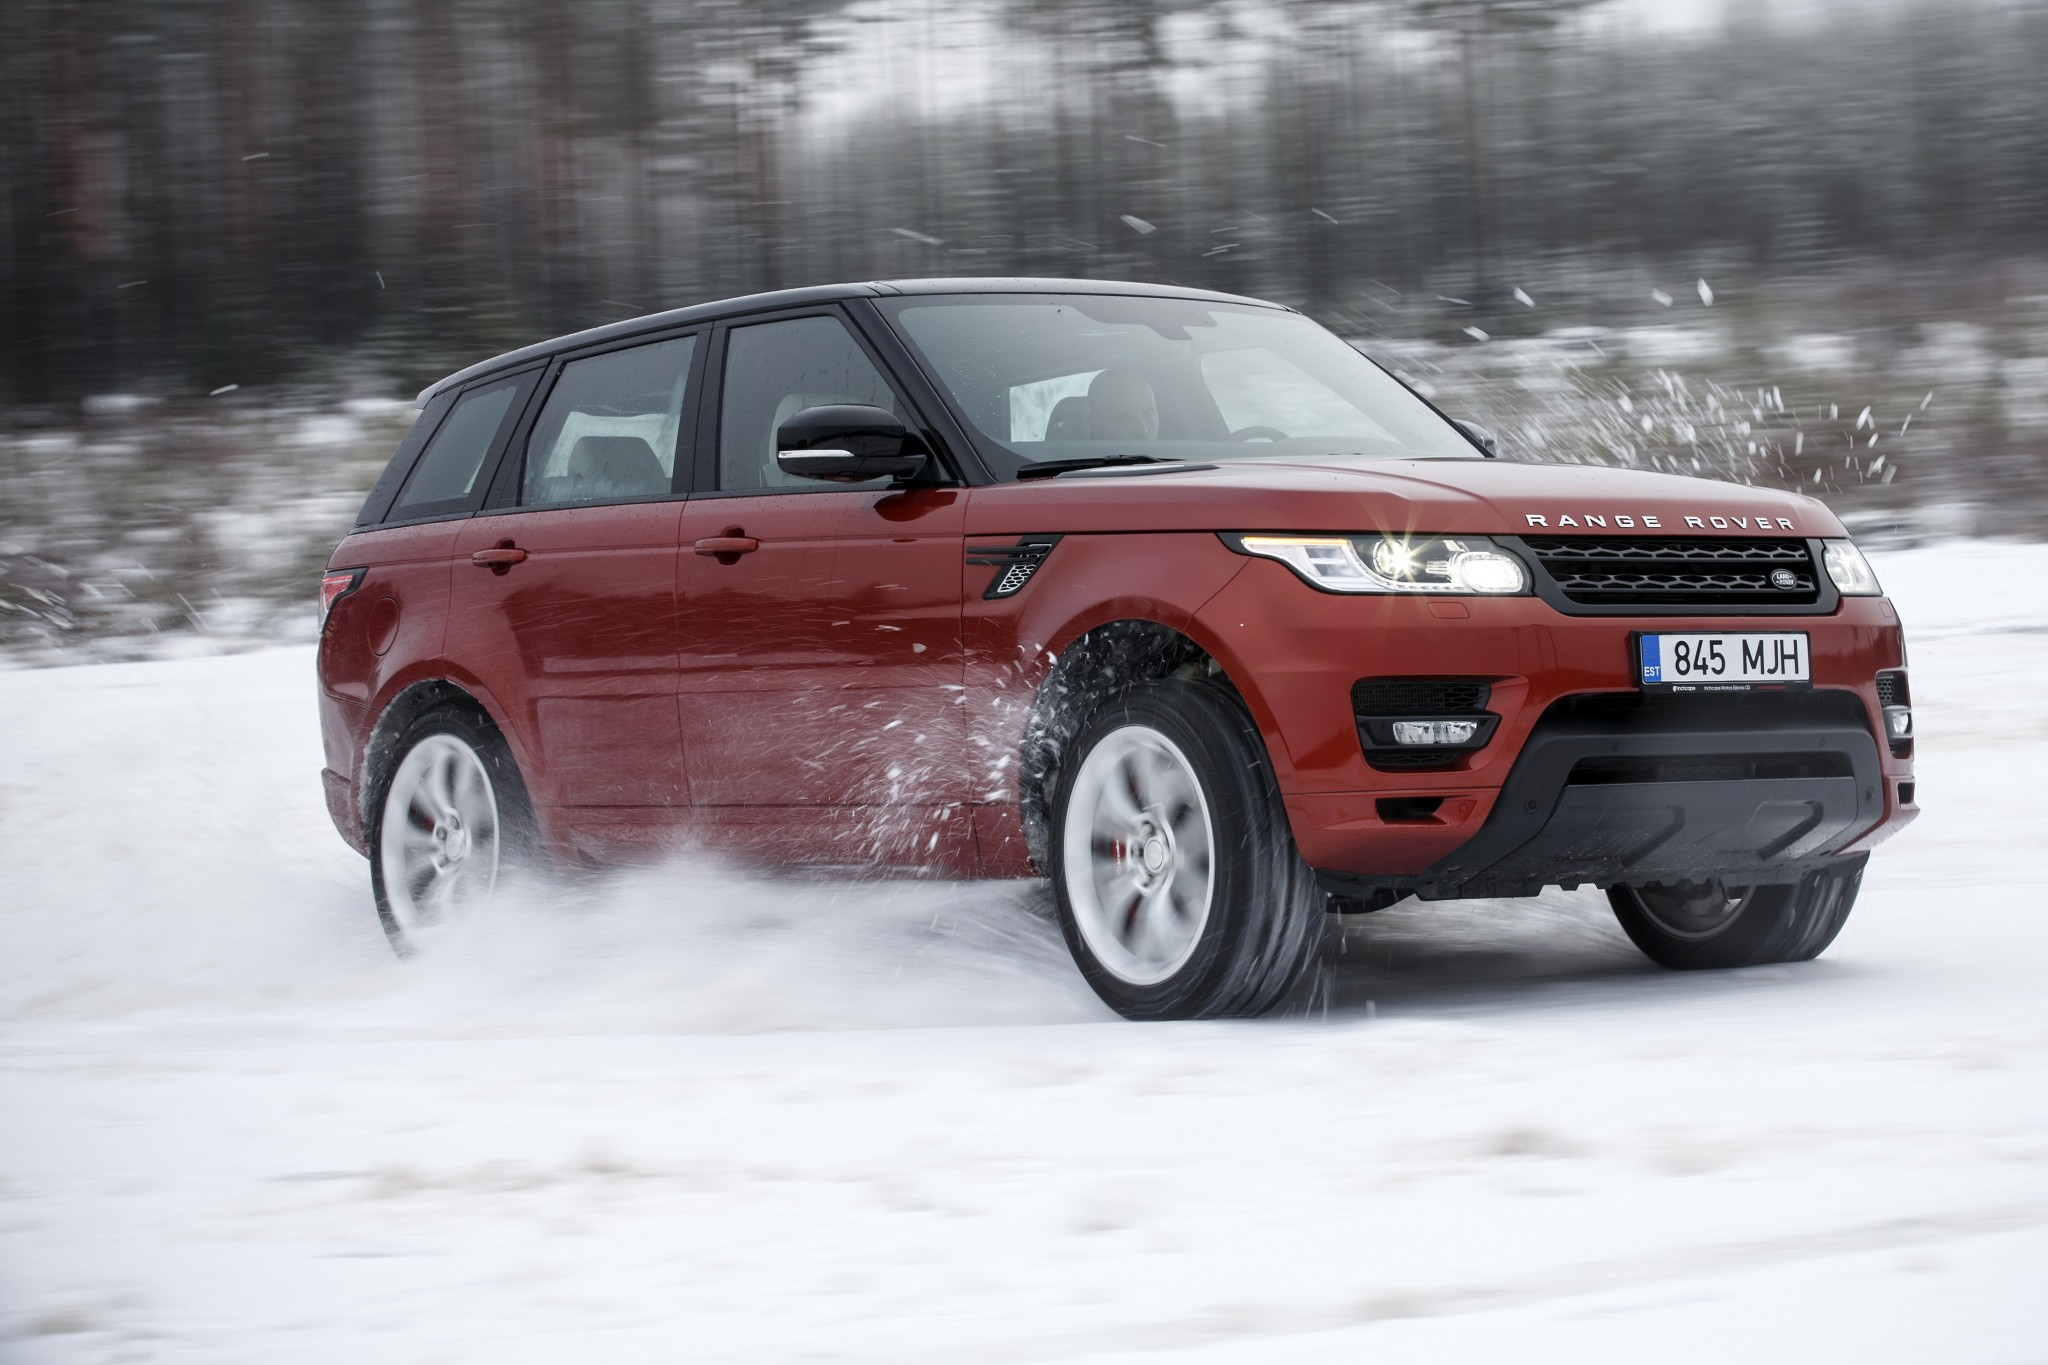 2015 range rover sport hse supercharged v6 review practical motoring. Black Bedroom Furniture Sets. Home Design Ideas